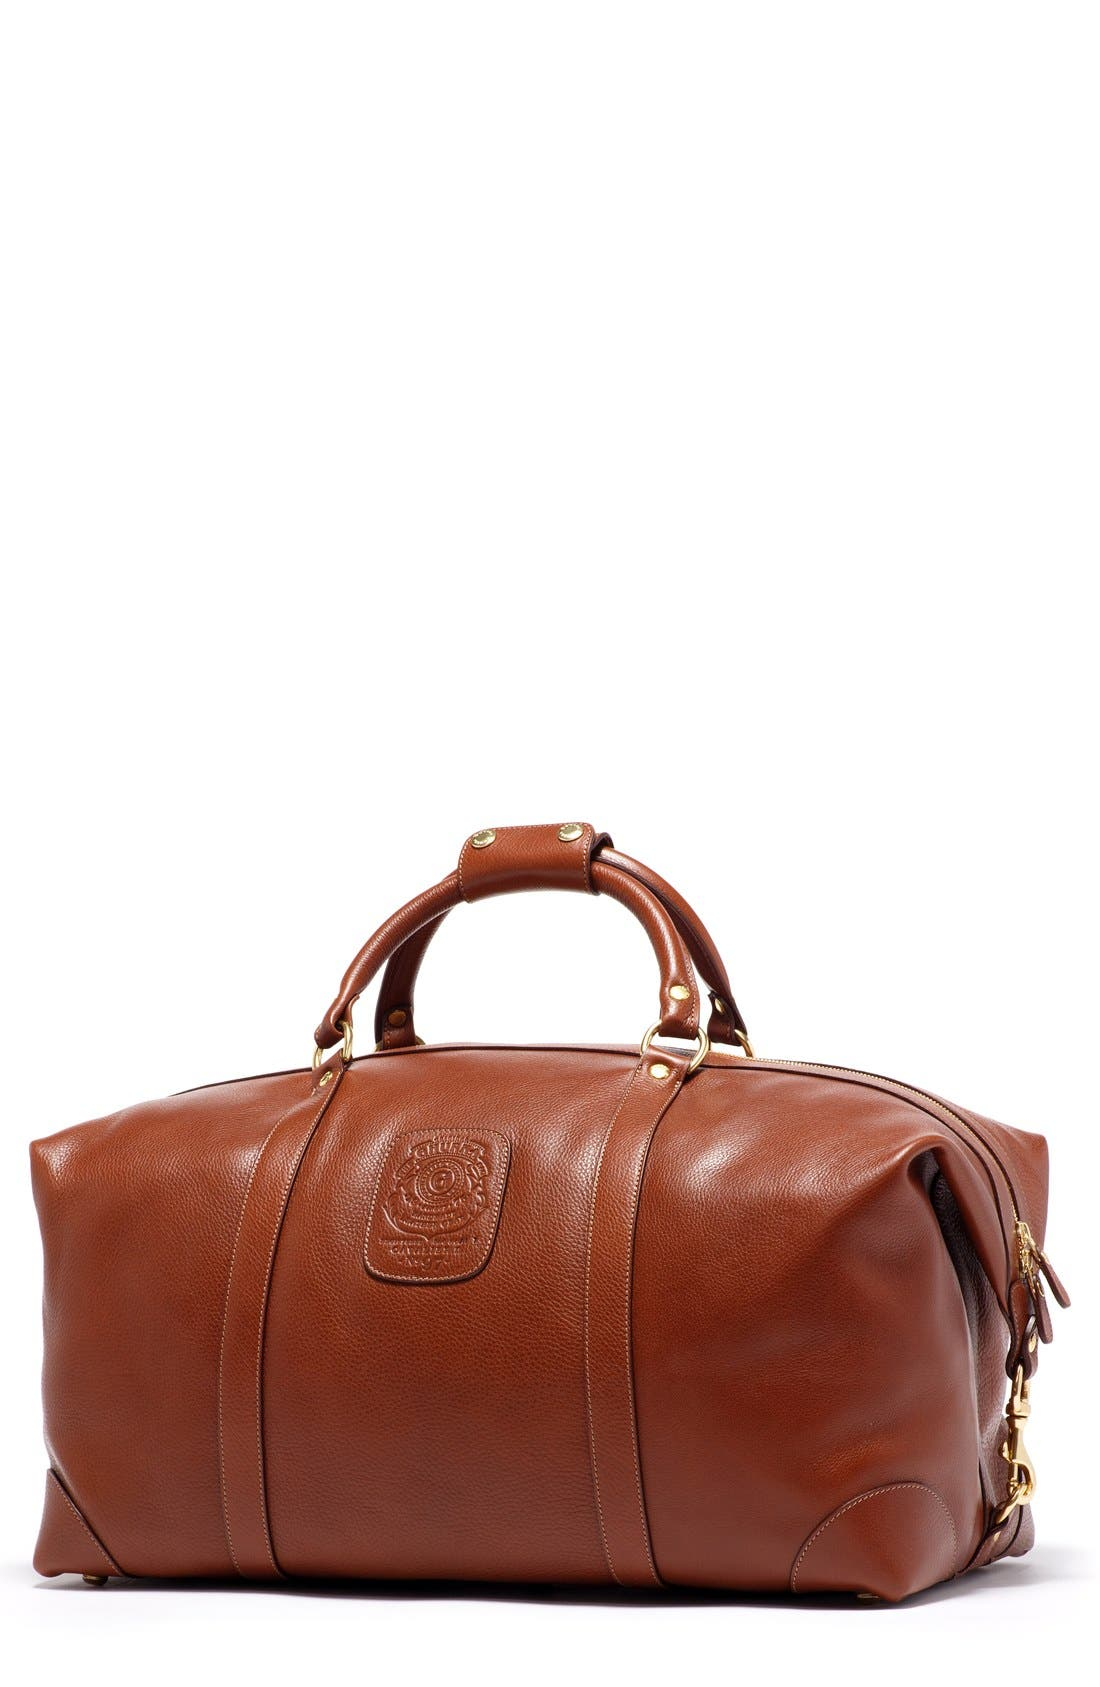 Alternate Image 1 Selected - Ghurka Cavalier II Leather Duffel Bag